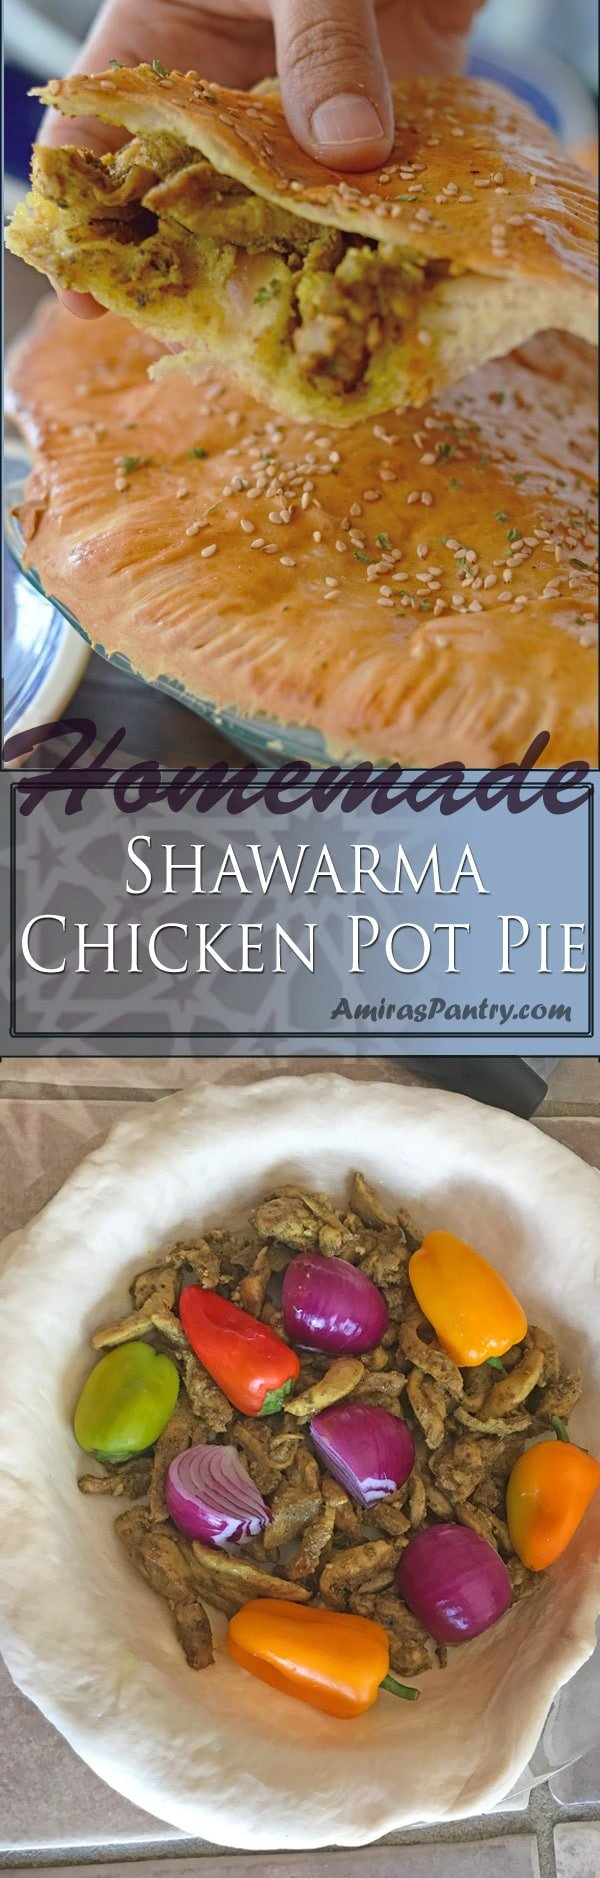 Get your shawarma fix with this festive looking delicious shawarma pie. Your eyes along with your tastebuds will definitely thank you for this.